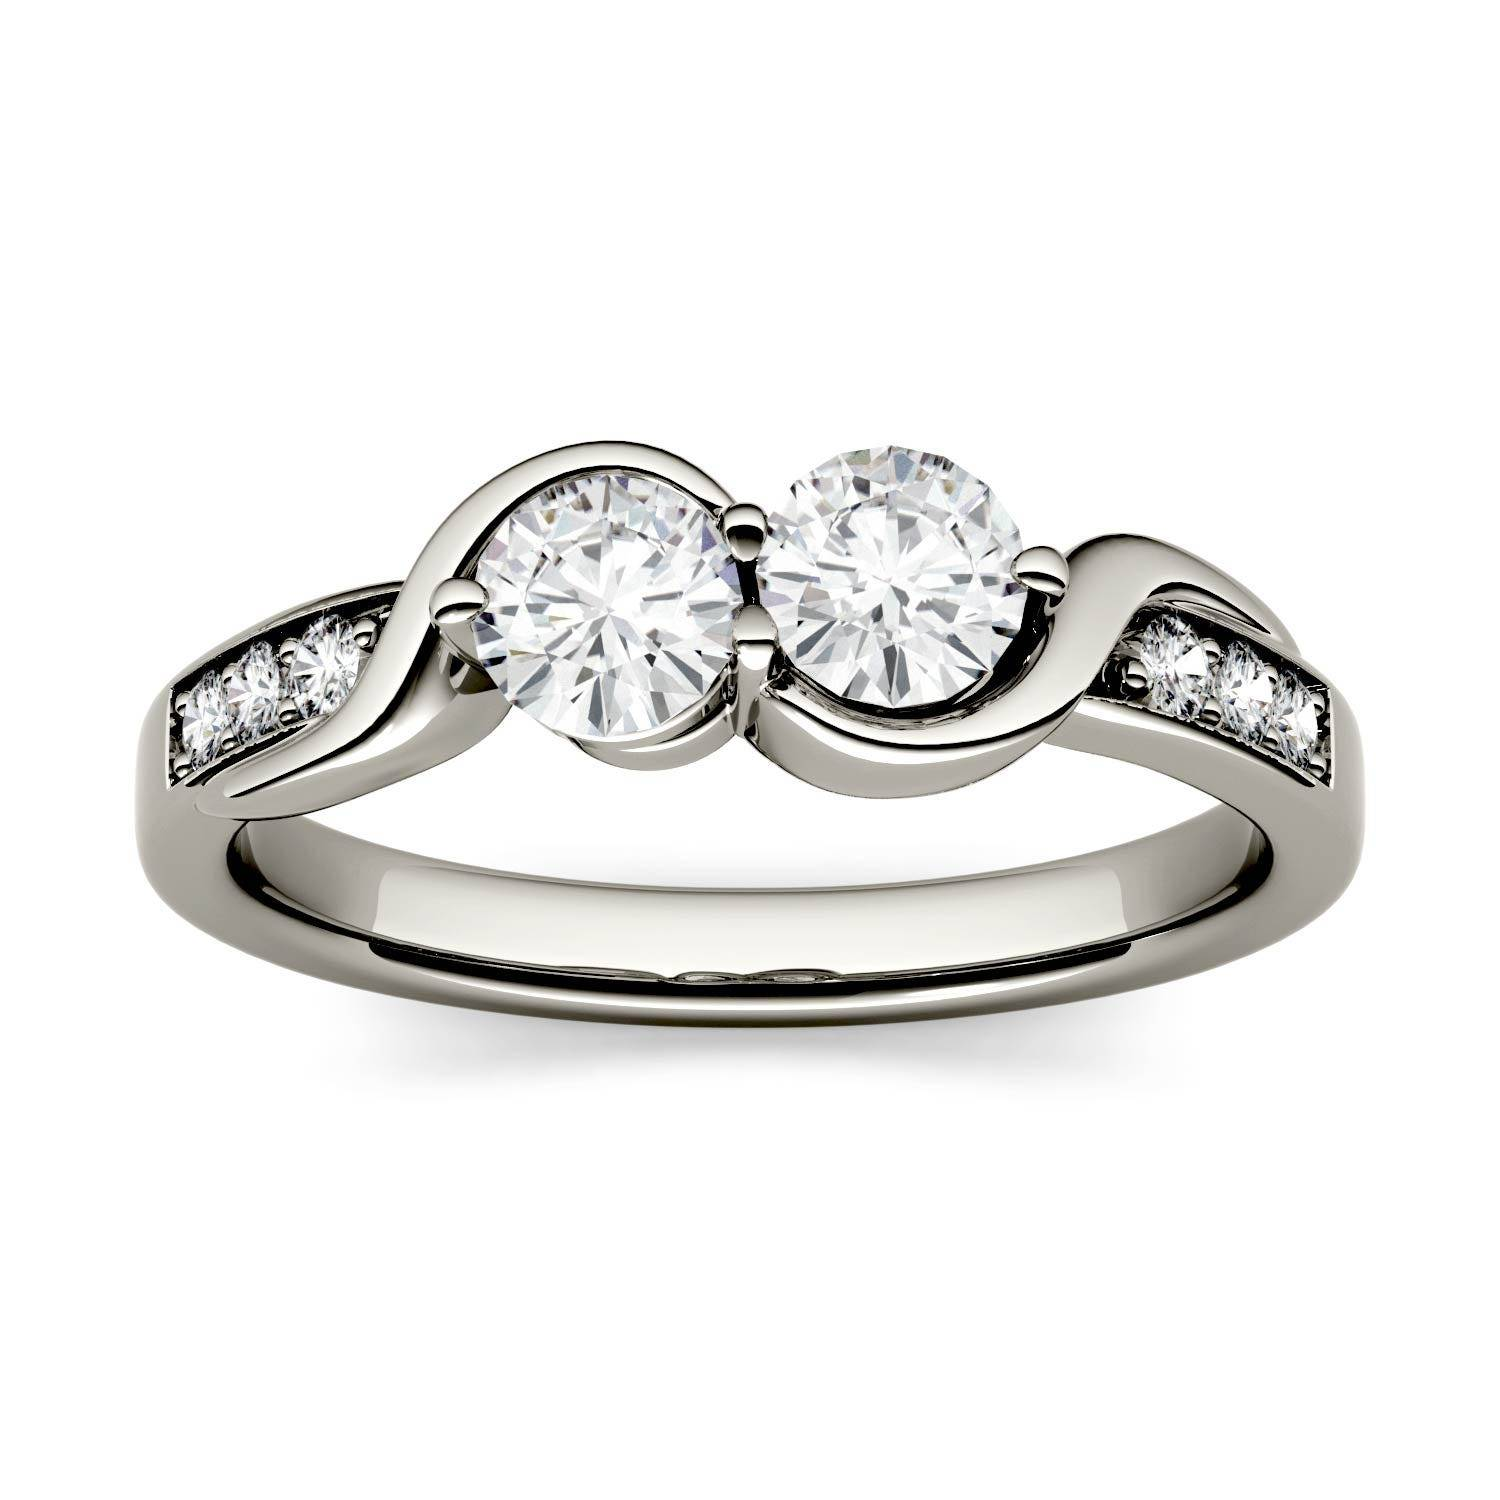 Charles & Colvard Two Stone Swirl with Side Accents Wedding Ring in 14K White Gold, Size: 7, 1.12CTW Round Forever One - Colorless Moissanite Charles & Colvard  - White Gold - Size: 7